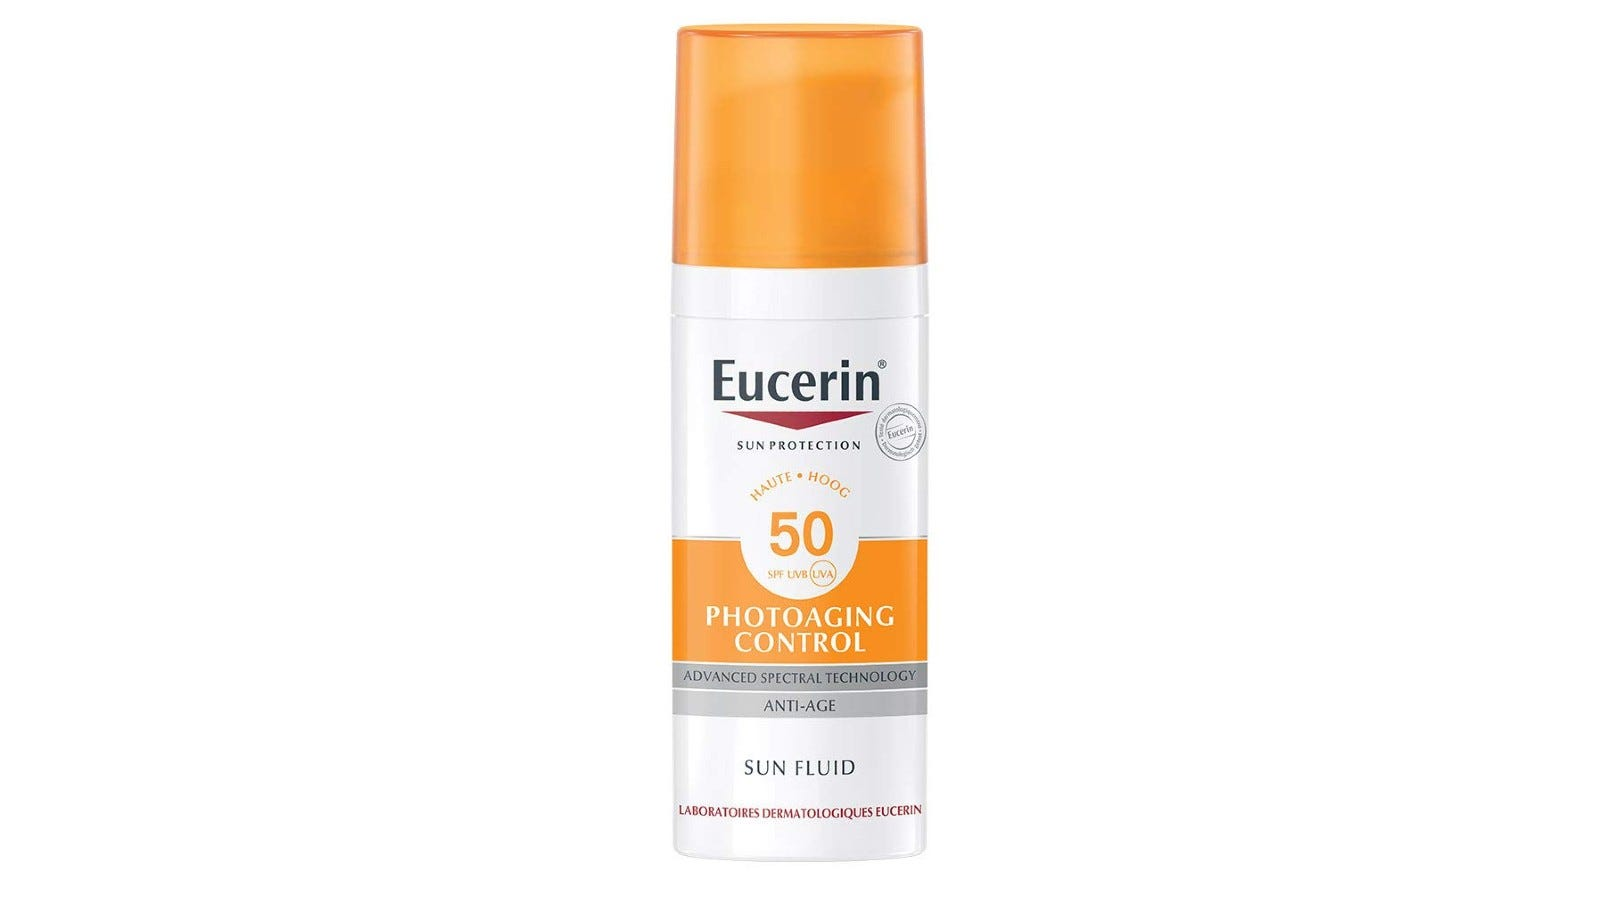 An orange and white container of Eucerin skincare cream.